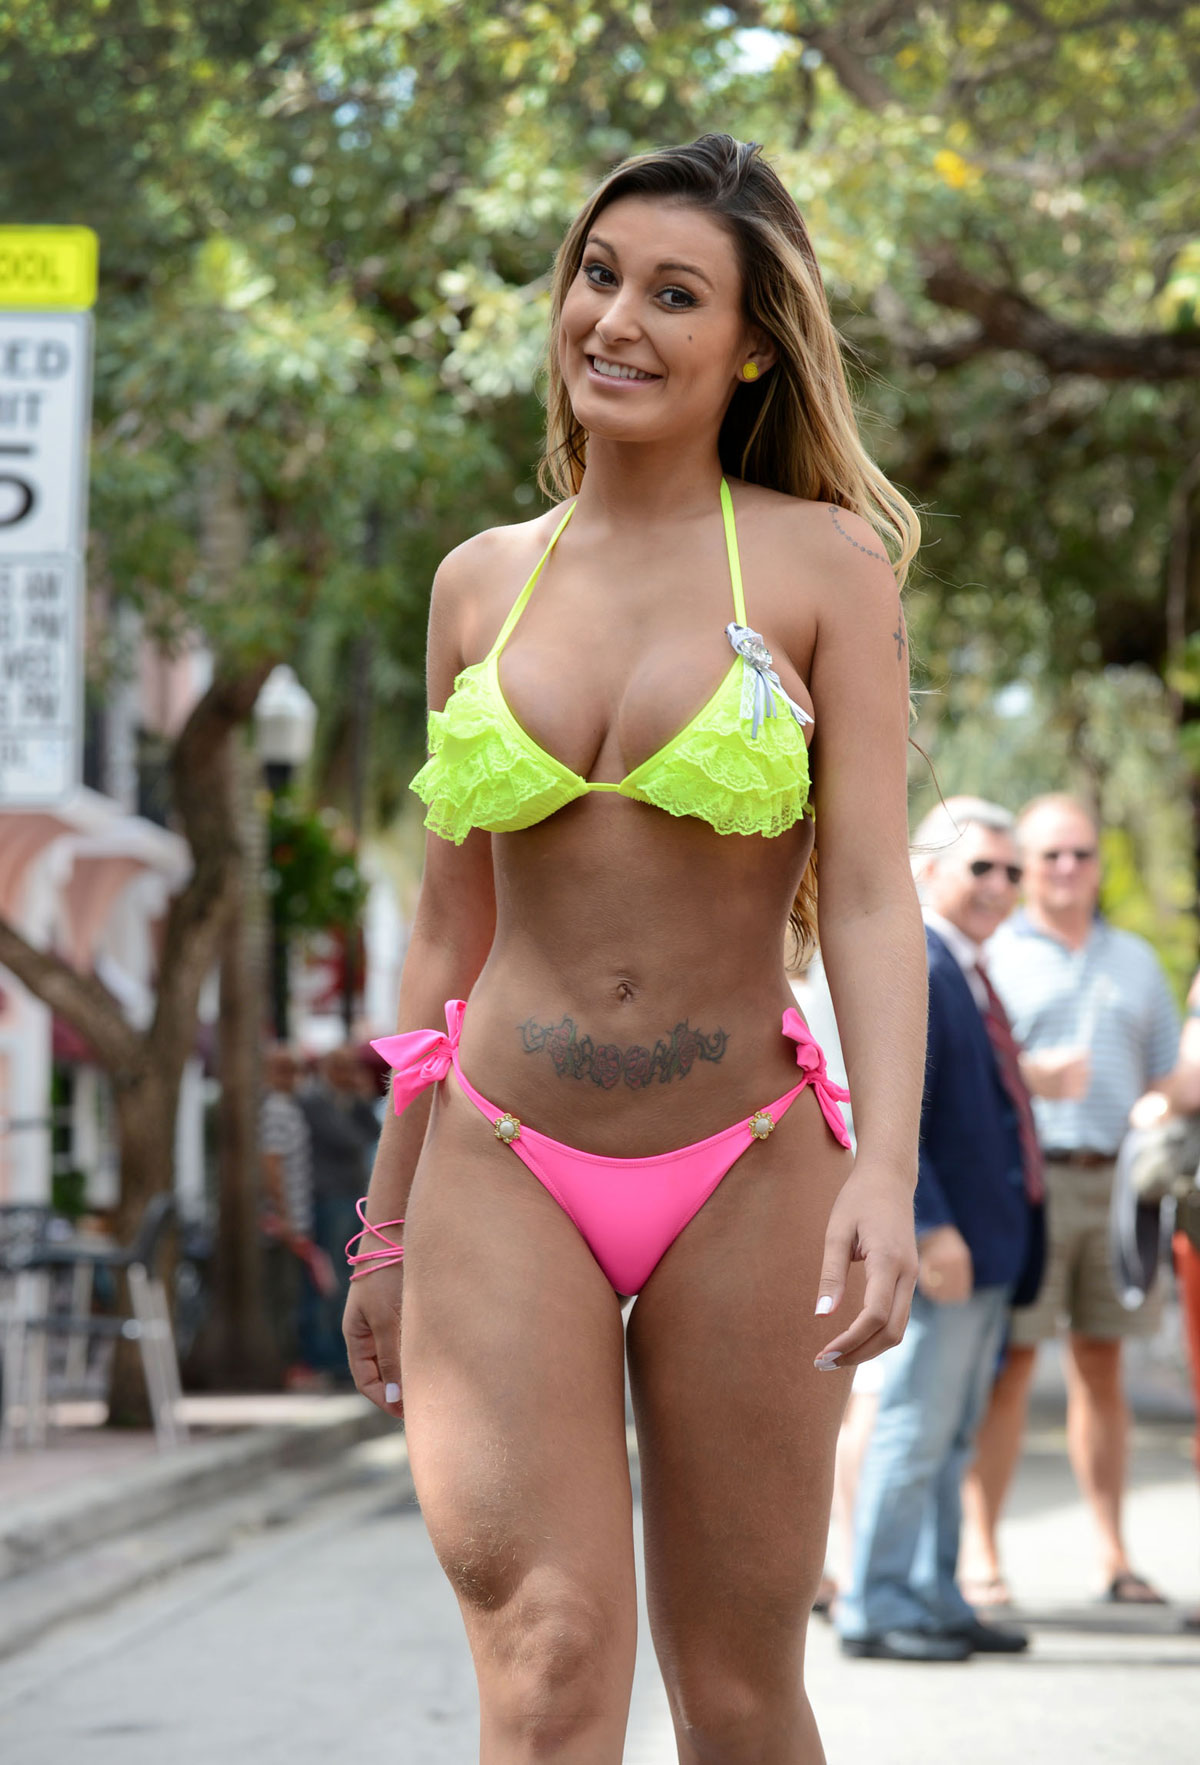 Video Andressa Urach nude (71 photo), Ass, Hot, Boobs, braless 2019